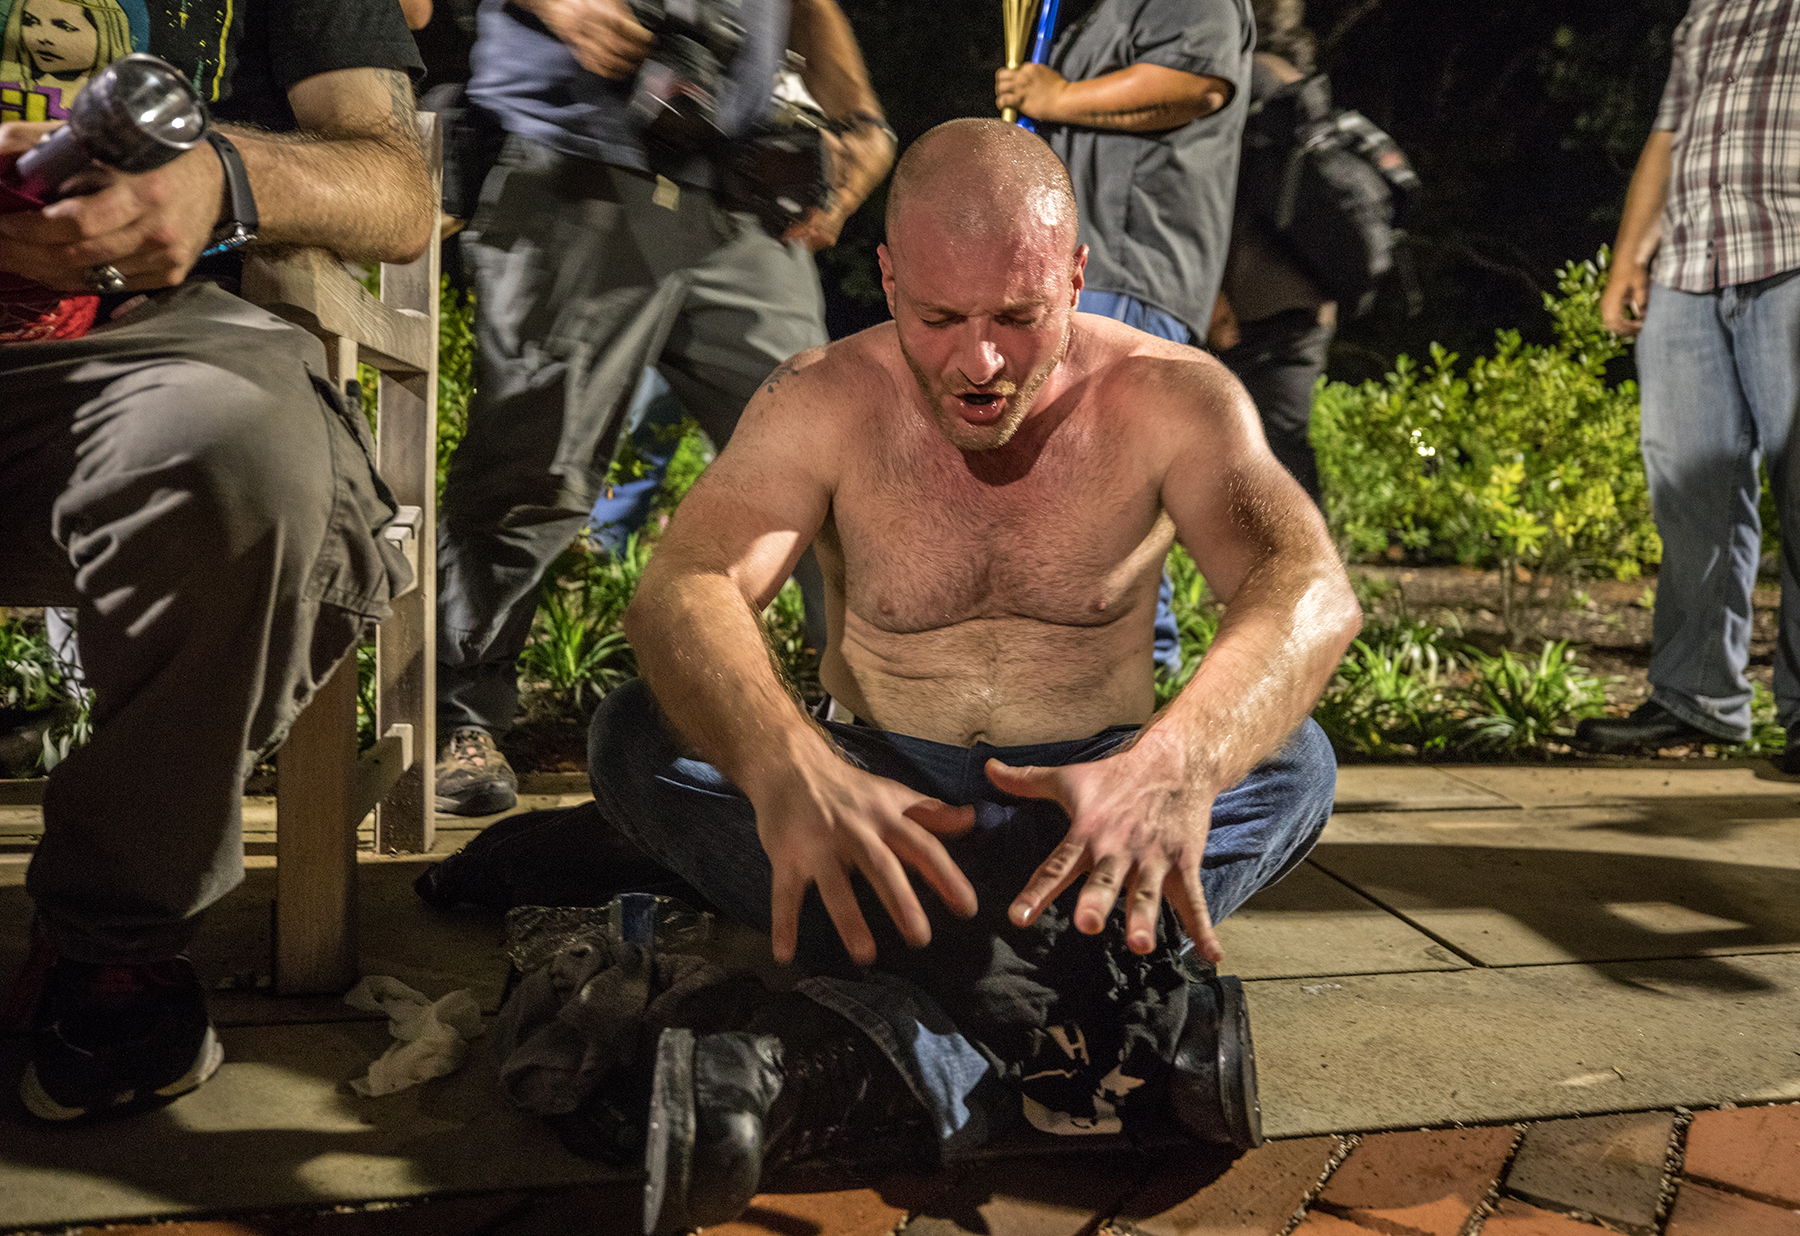 CHARLOTTESVILLE,VA-AUG11: Updated with name -- Christopher Cantwell, 36-year-old leader in the white supremacist movement.A white nationalist is helped by police after being overcome with tear gas after hundreds of white nationalists and white supremacists carrying torches marched in a parade through the University of Virginia campus. Beginning a little after 9:30 p.m., the march lasted 15 to 20 minutes before ending in skirmishing when the marchers were met by a small group of counterprotesters at the base of a statue of Thomas Jefferson, the universitys founder. (Photo by Evelyn Hockstein/For The Washington Post via Getty Images)